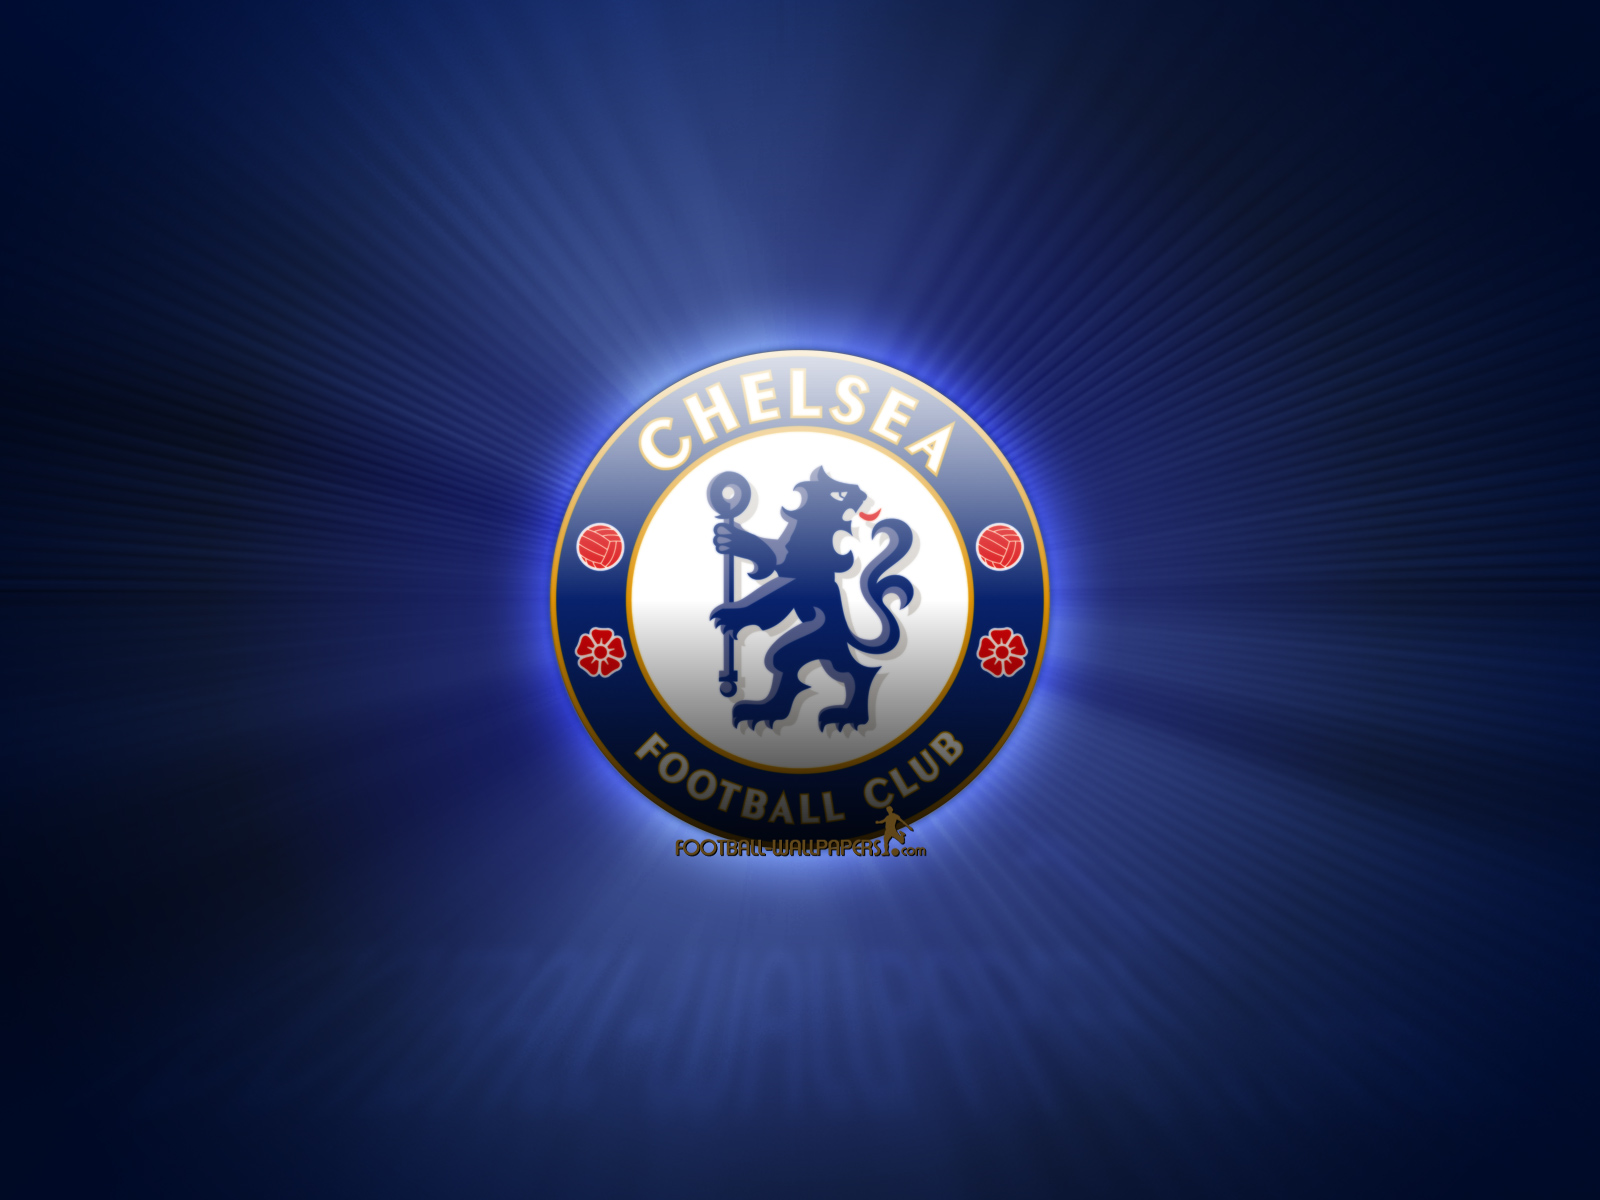 Chelsea Mascot Is A Lion Taken From Their Club Logos And Named